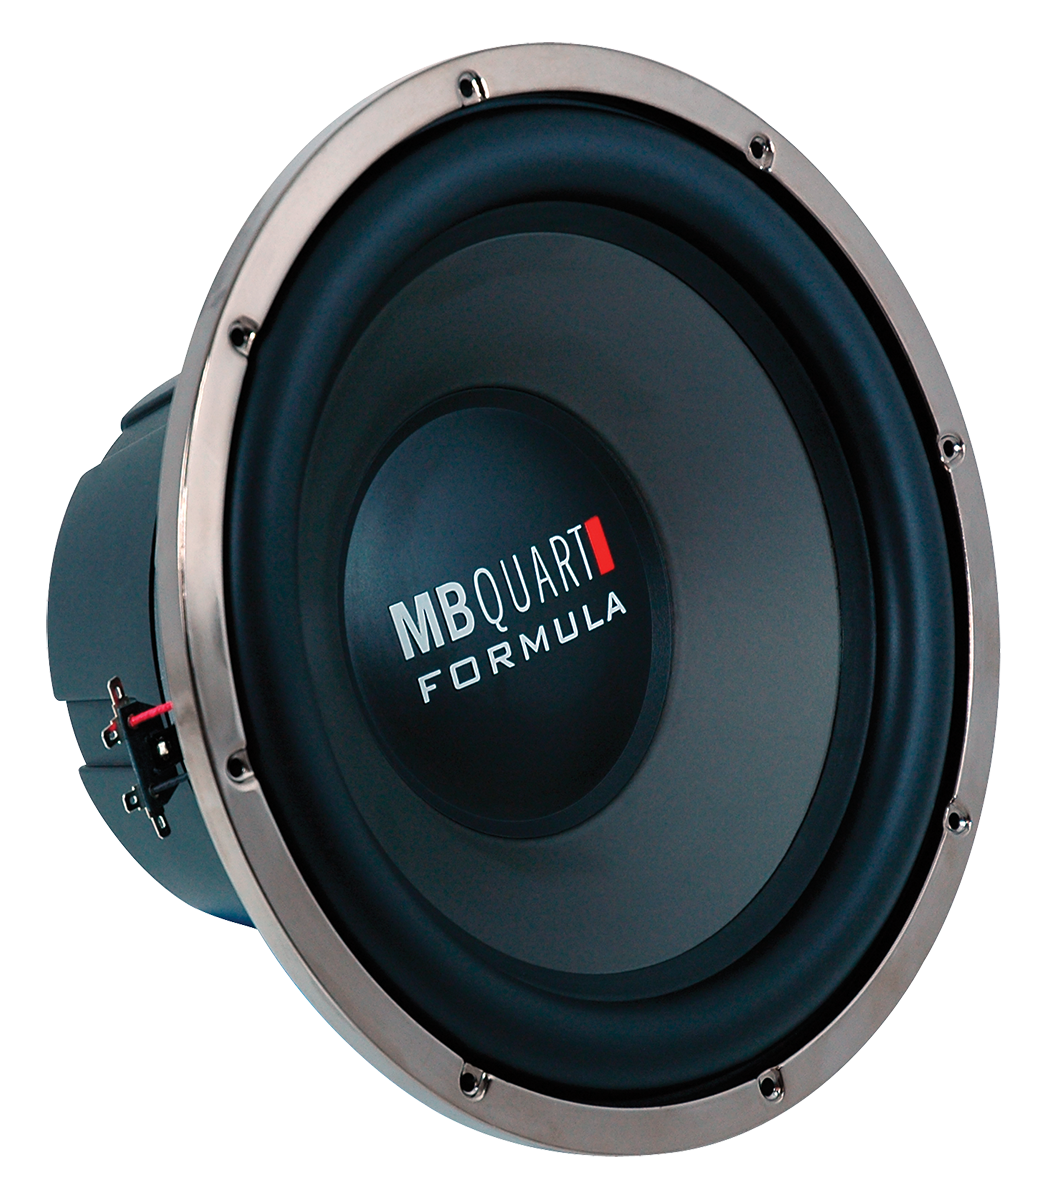 Audio Speakers File PNG Image